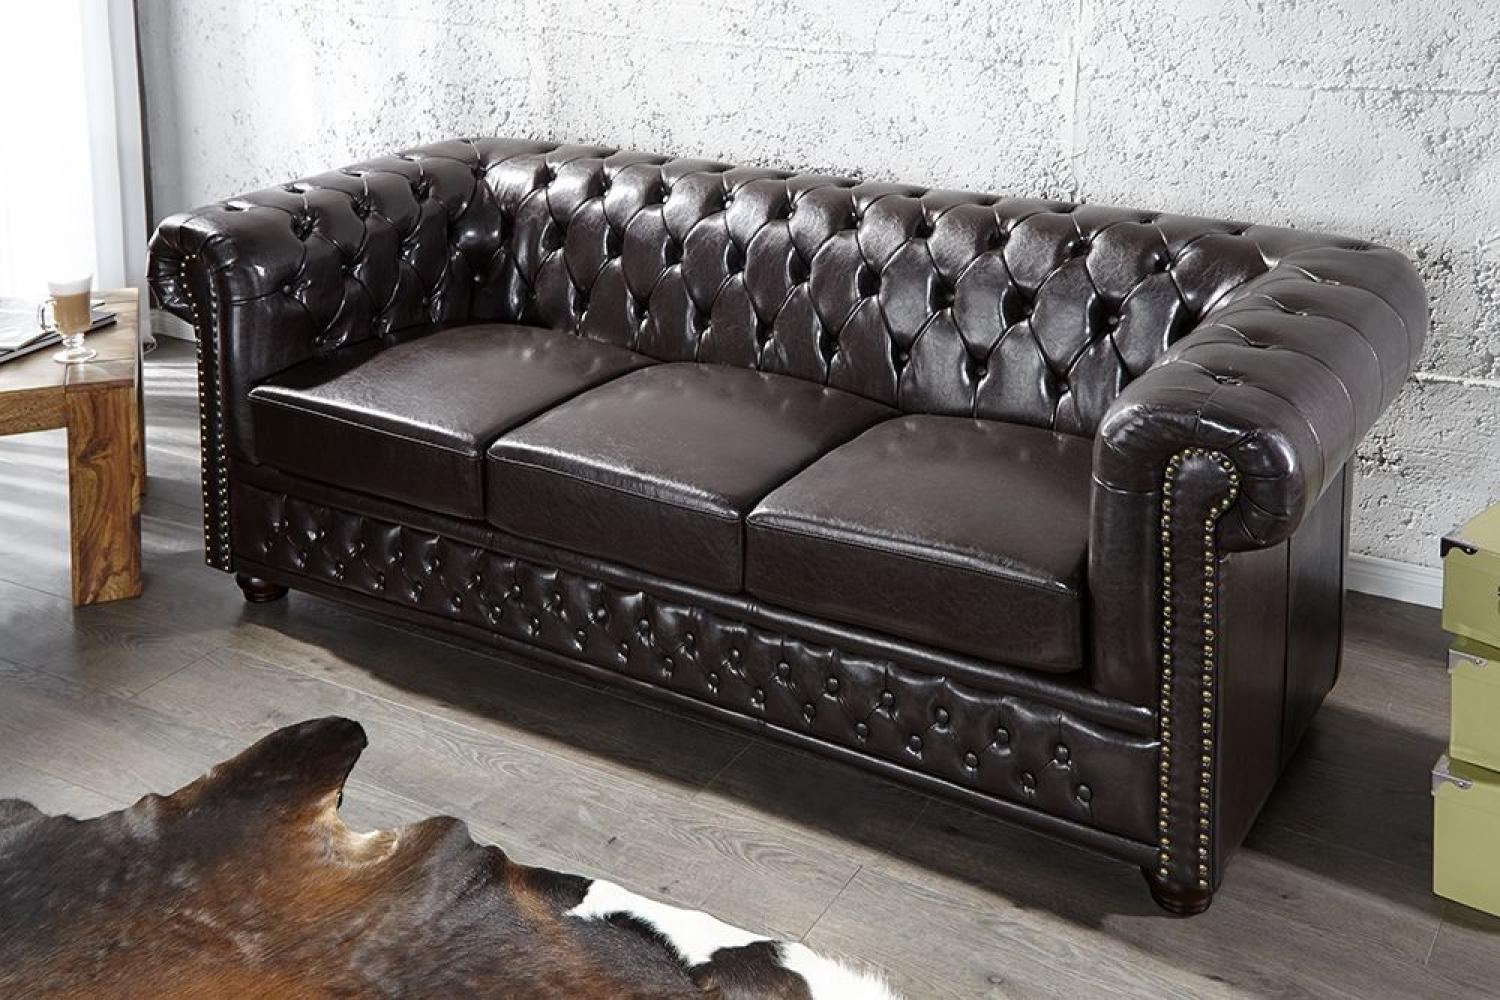 Connu Photos canapé chesterfield DC62